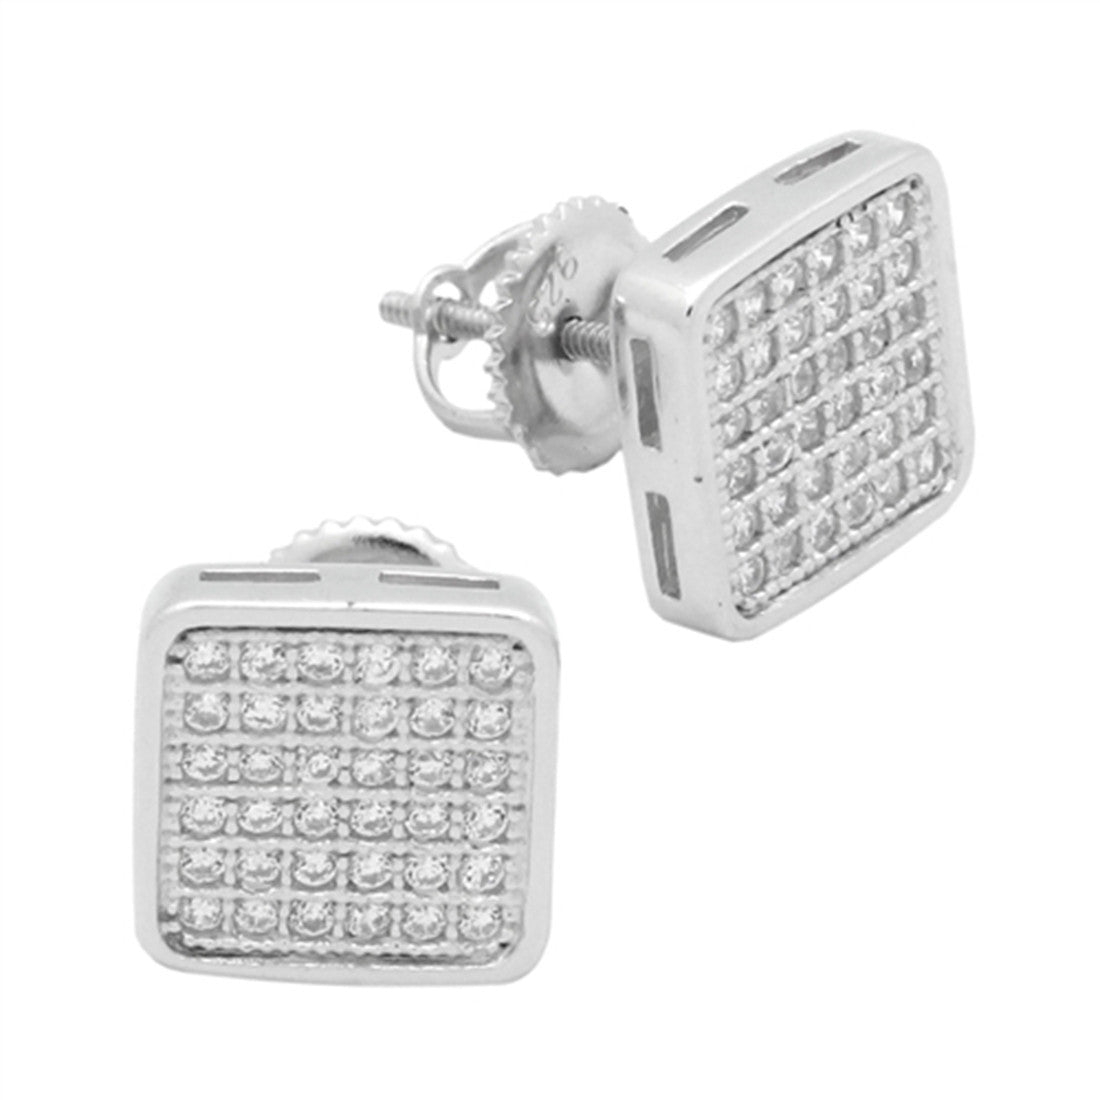 b270b9835 ... Zirconia 925 Sterling Silver. 9mm Square Hip Hop Screw Back Men Women  Unisex Stud Earring Round Pave Ice Cubic Zirconia. Hover to zoom